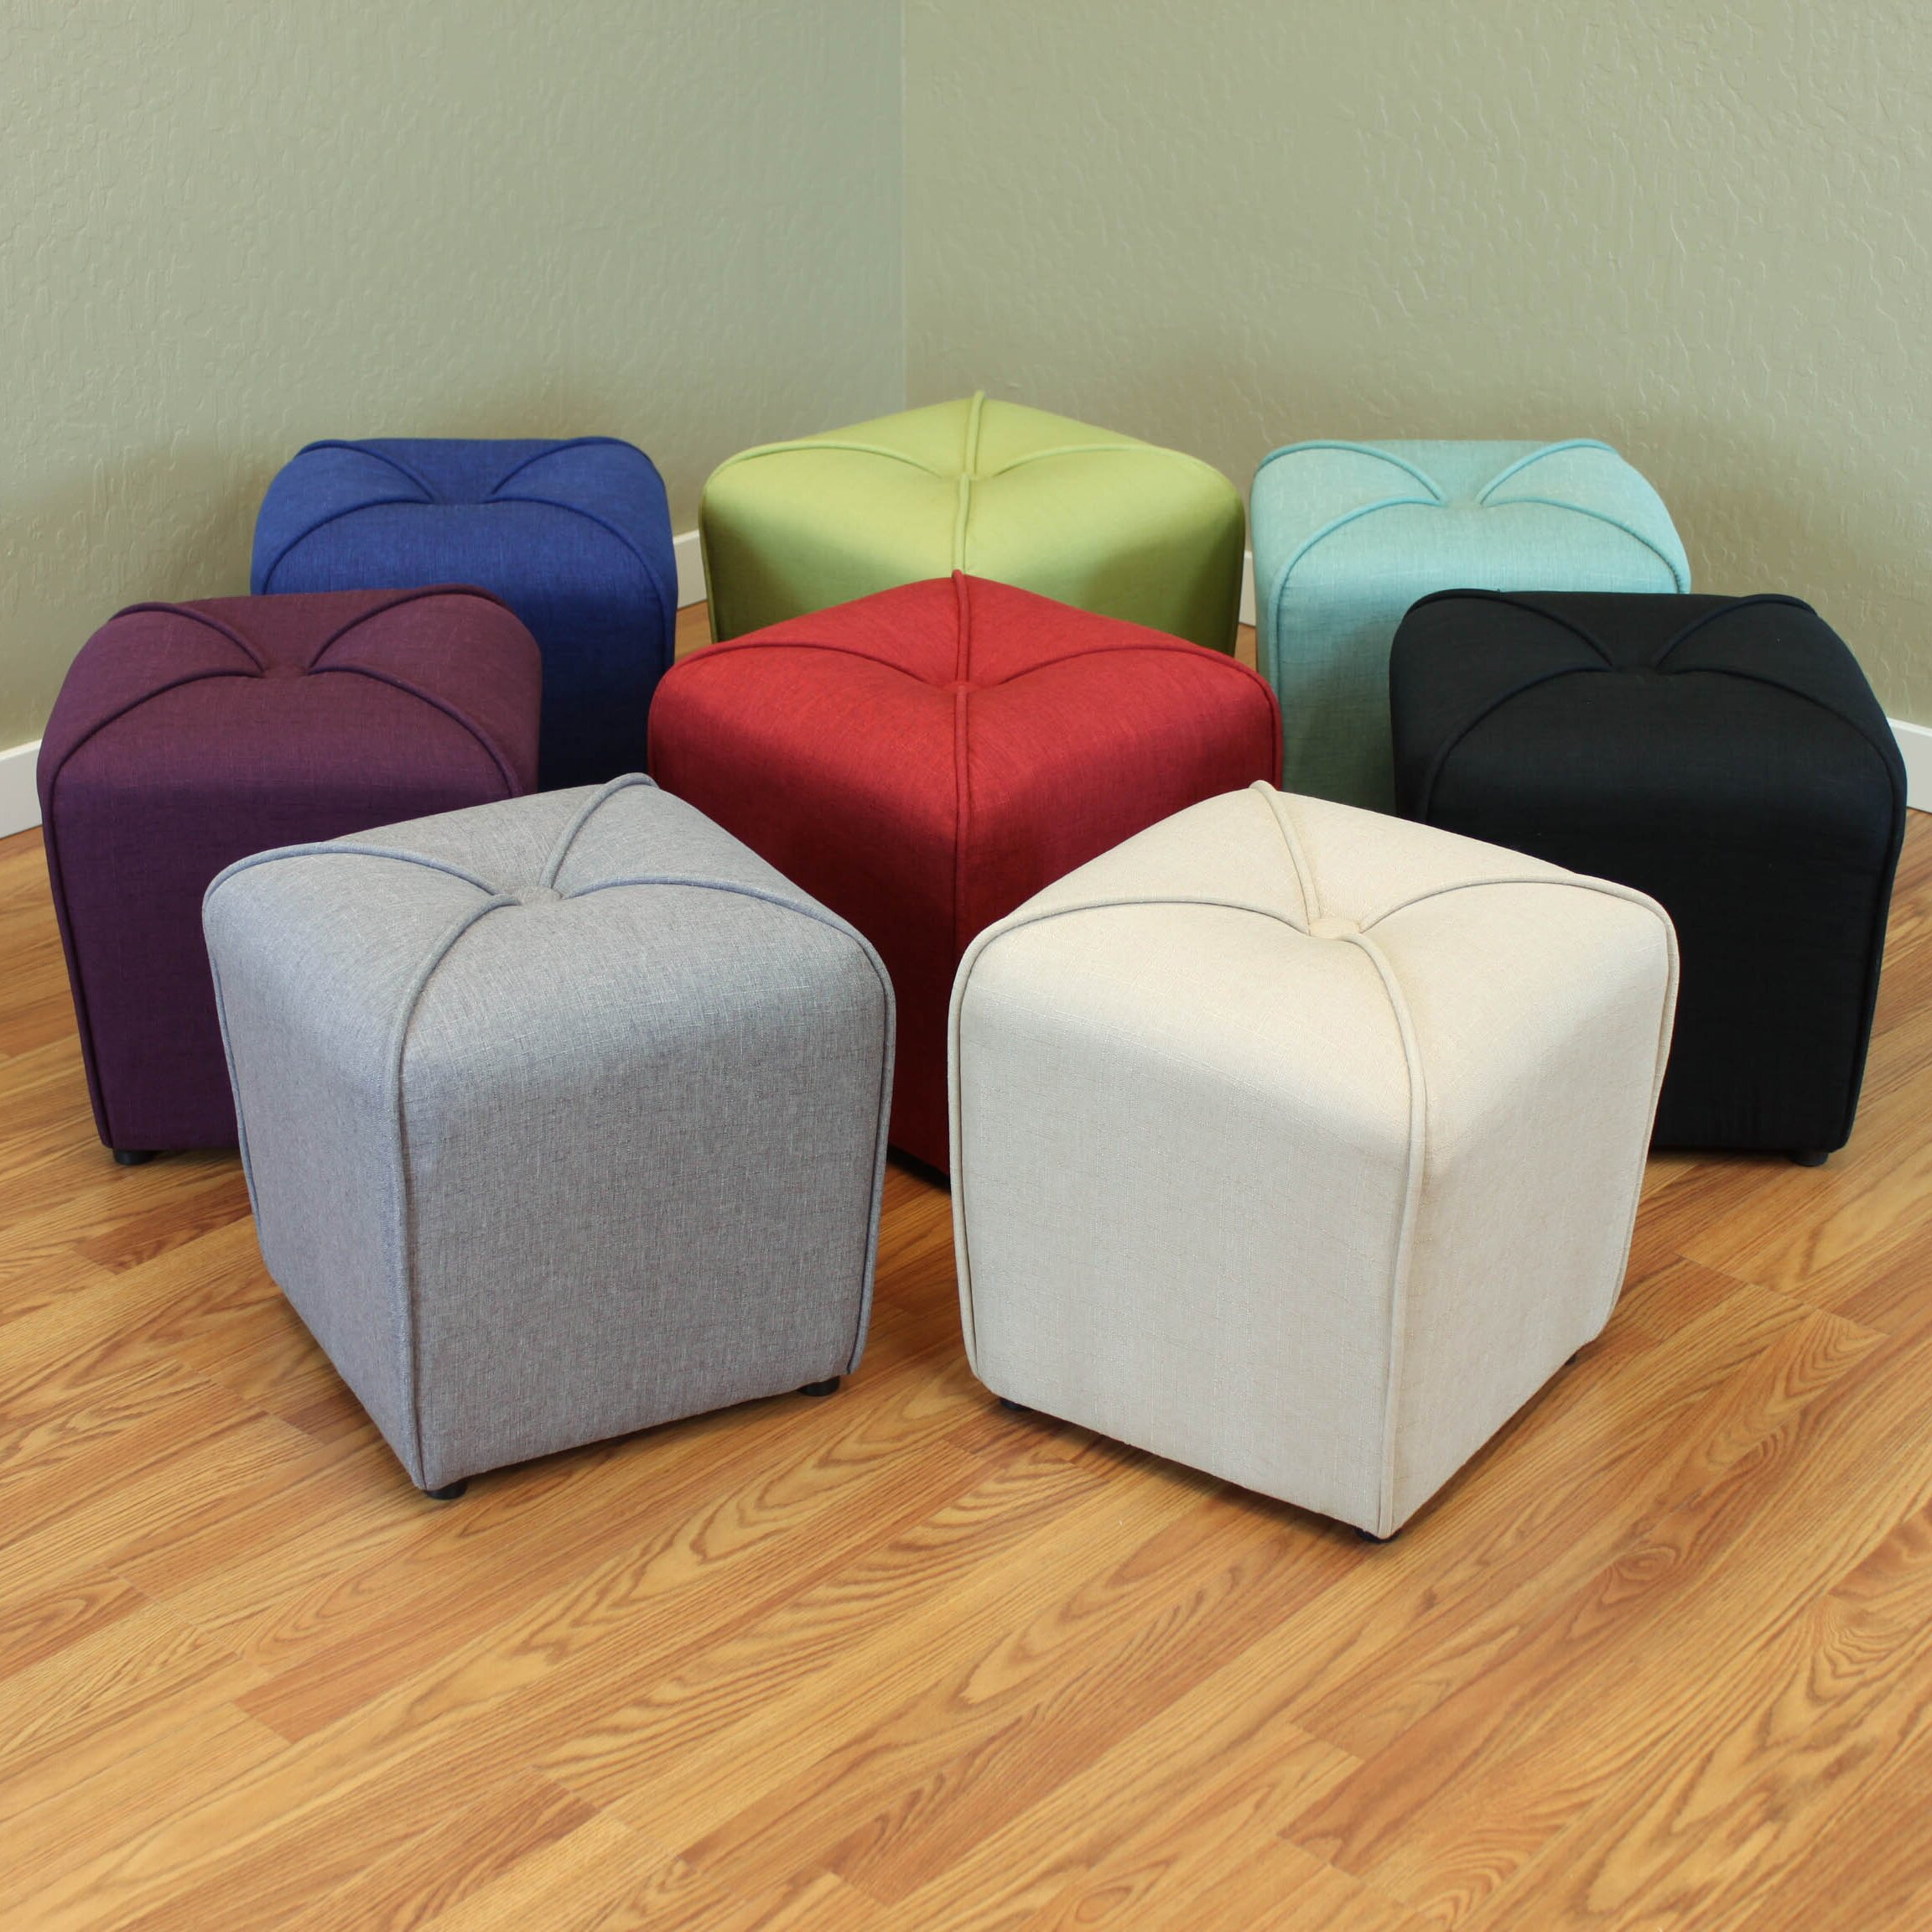 Three Posts Polycarp Storage Ottoman Reviews: Three Posts Mapletown Upholstered Ottoman & Reviews